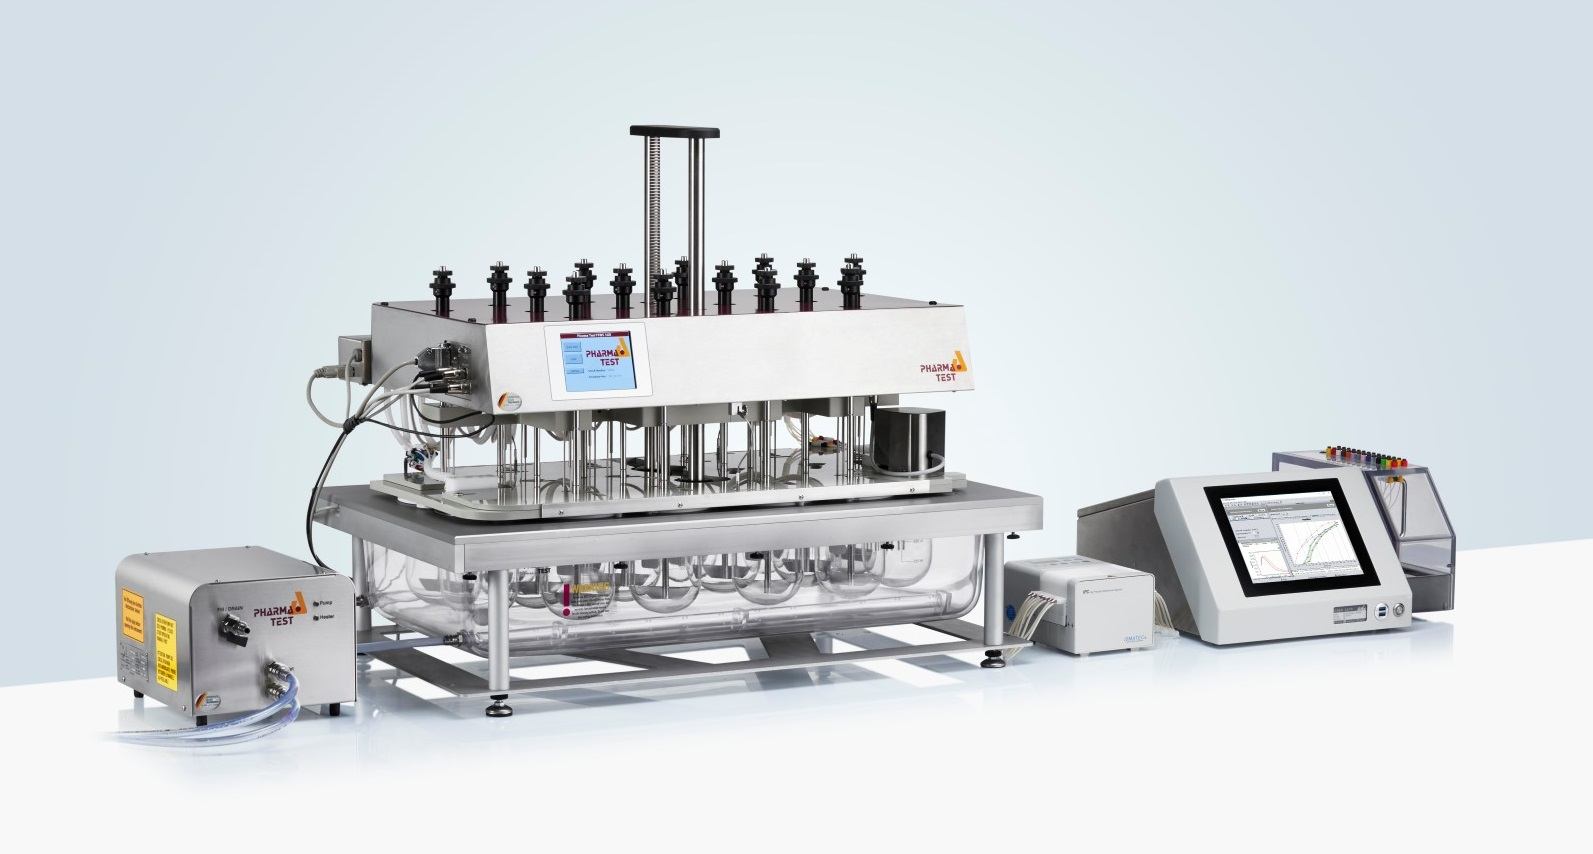 ADS-L Closed Loop Online System: for an online automated system it is possible to use the J&M TIDAS L UV/VIS spectrometer with a 16 position multiple-cell-changer. The spectrophotometer and pump of such a system is controlled by the powerful WinDiss ARGUS dissolution software running on the integrated PC of the TIDAS L spectrometer.